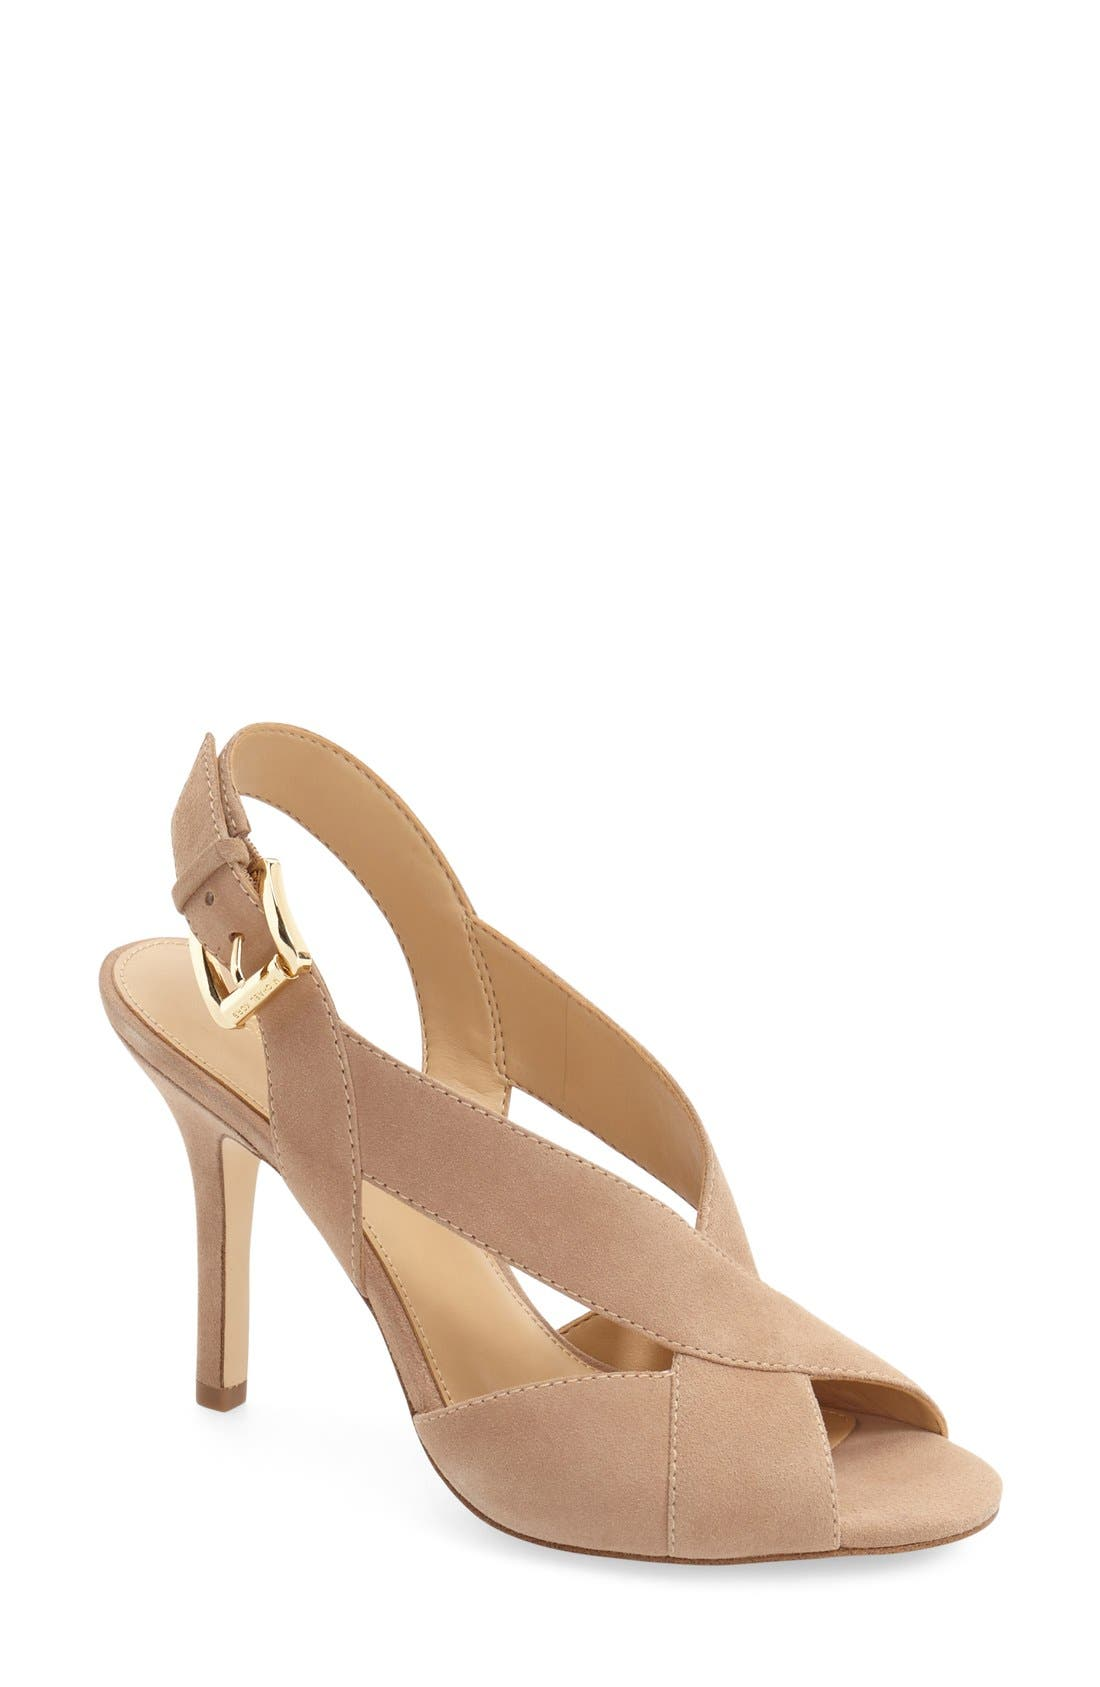 Alternate Image 1 Selected - MICHAEL Michael Kors Becky Slingback Sandal (Women)